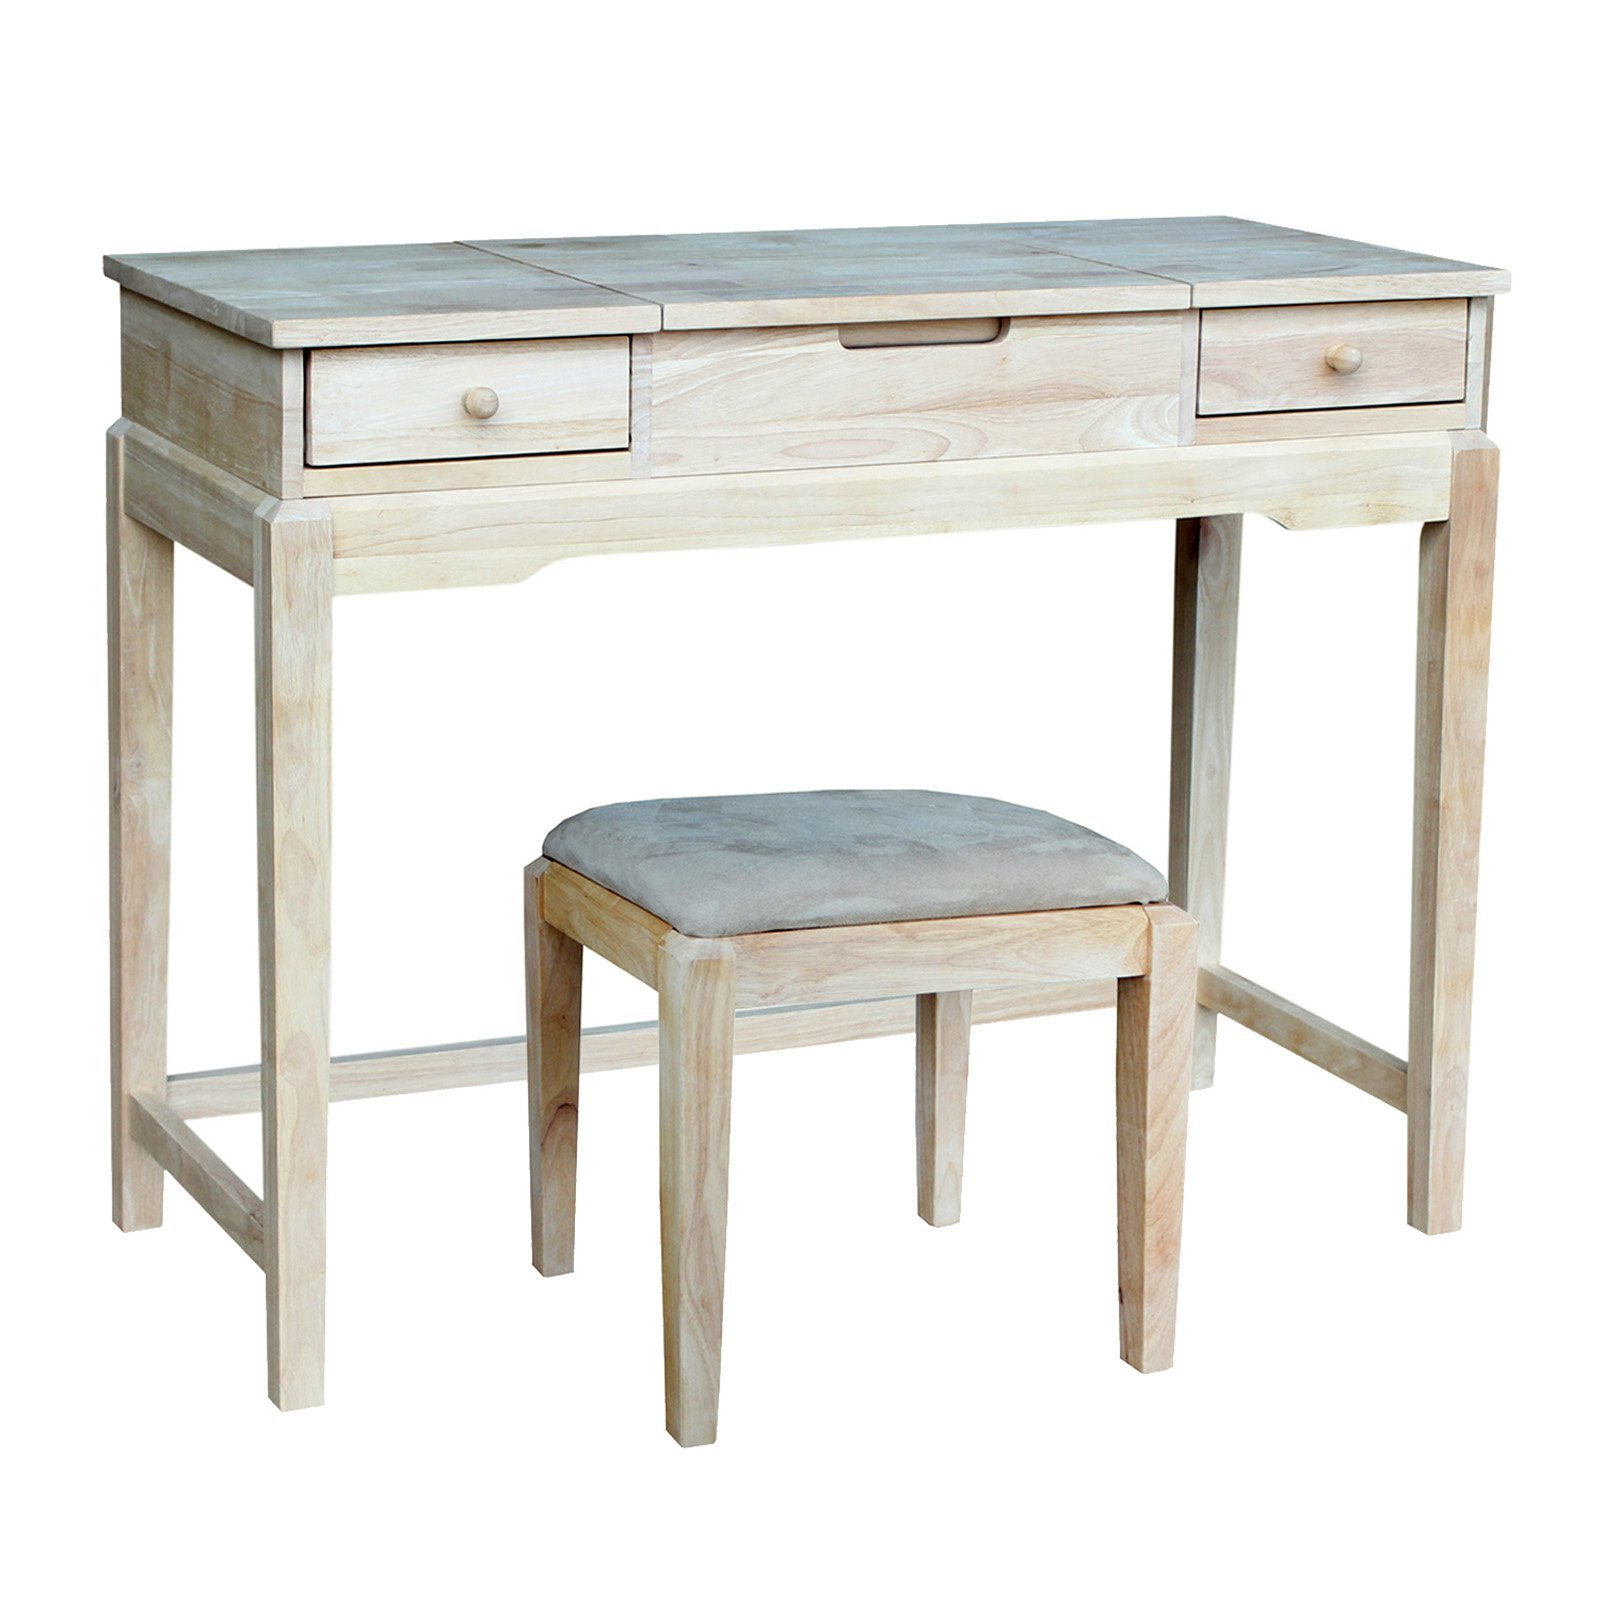 International Concepts Vanity Table with Bench